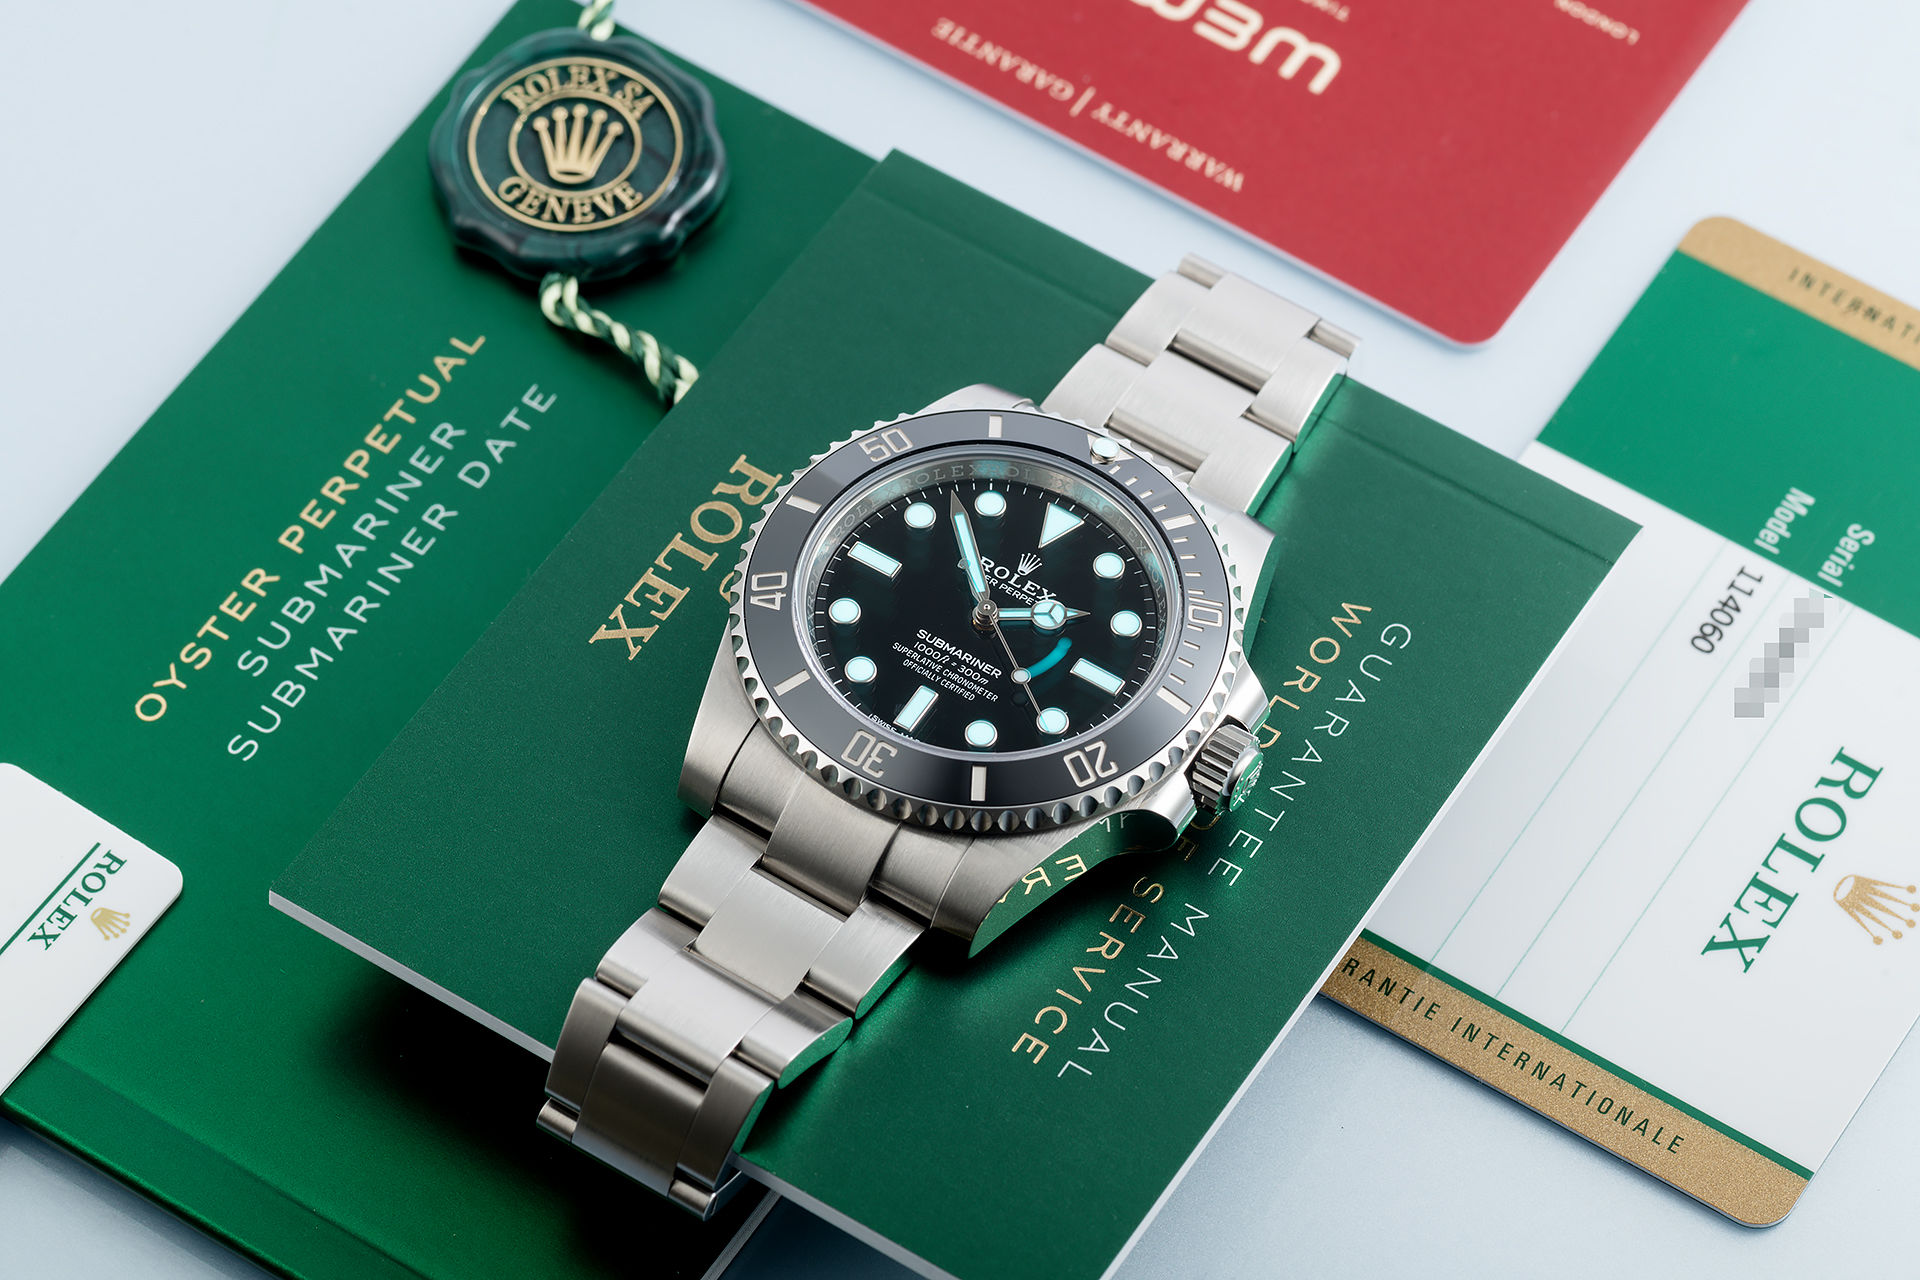 ref 114060 | 5 Year Warranty to 2025 | Rolex Submariner